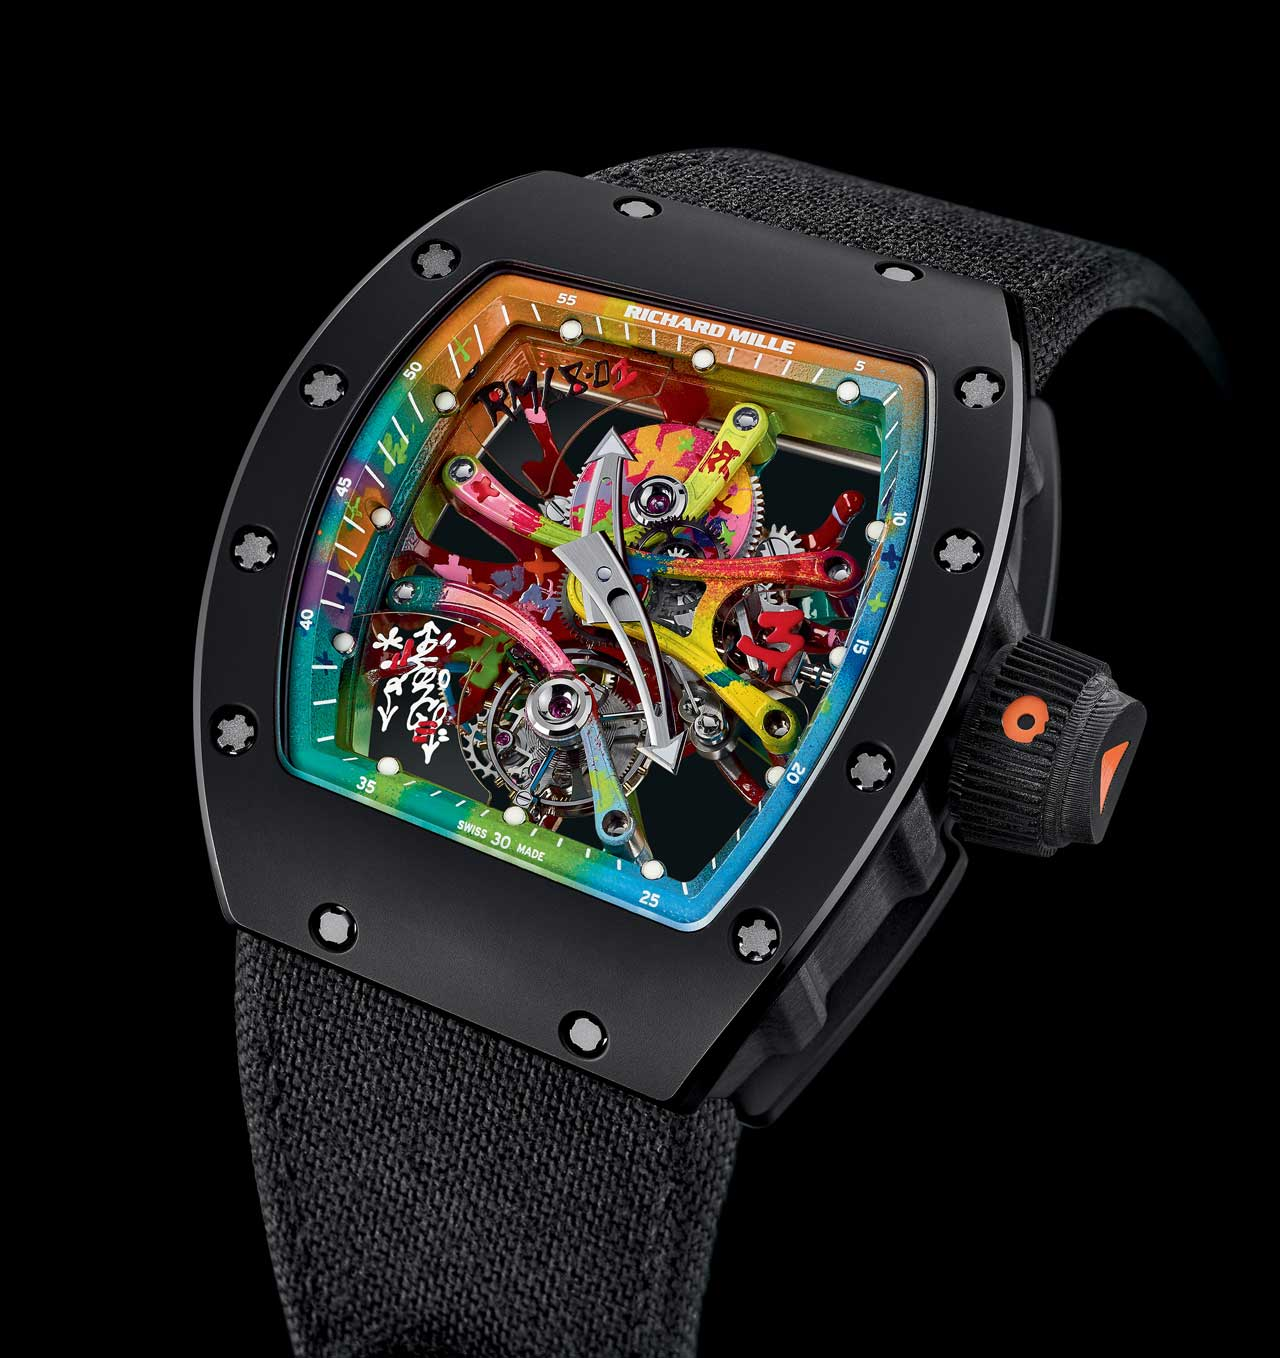 watches tech curved screens products broad for screen protector tablets hi nano smartphones liquid